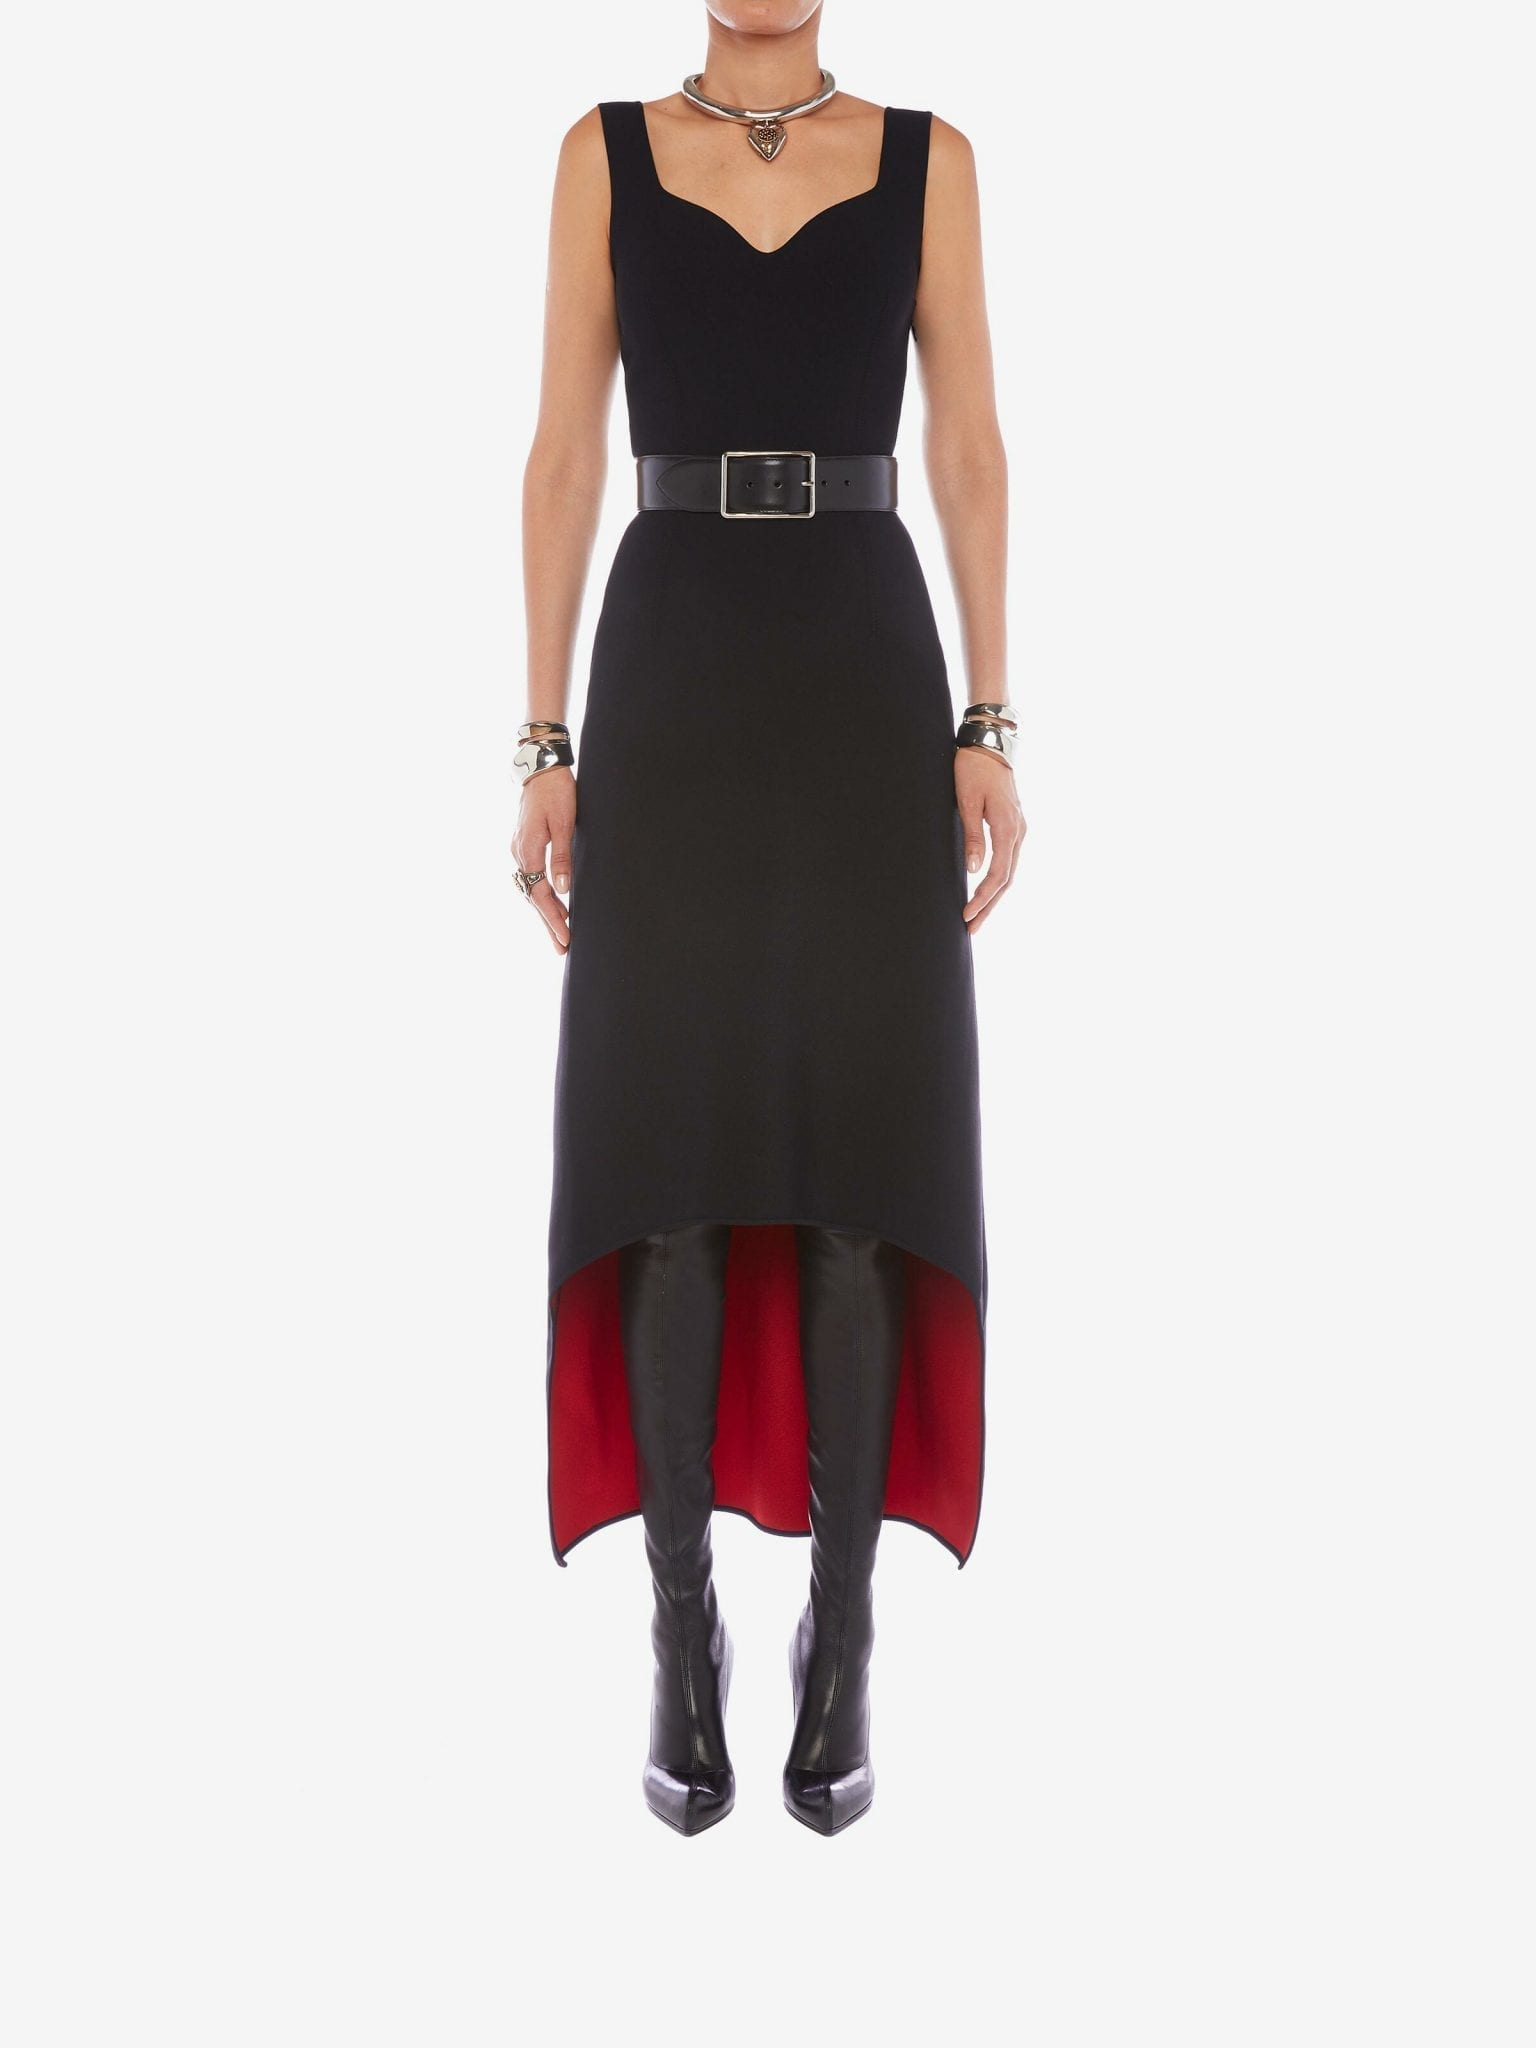 ALEXANDER MCQUEEN Sculptural Knit Dress